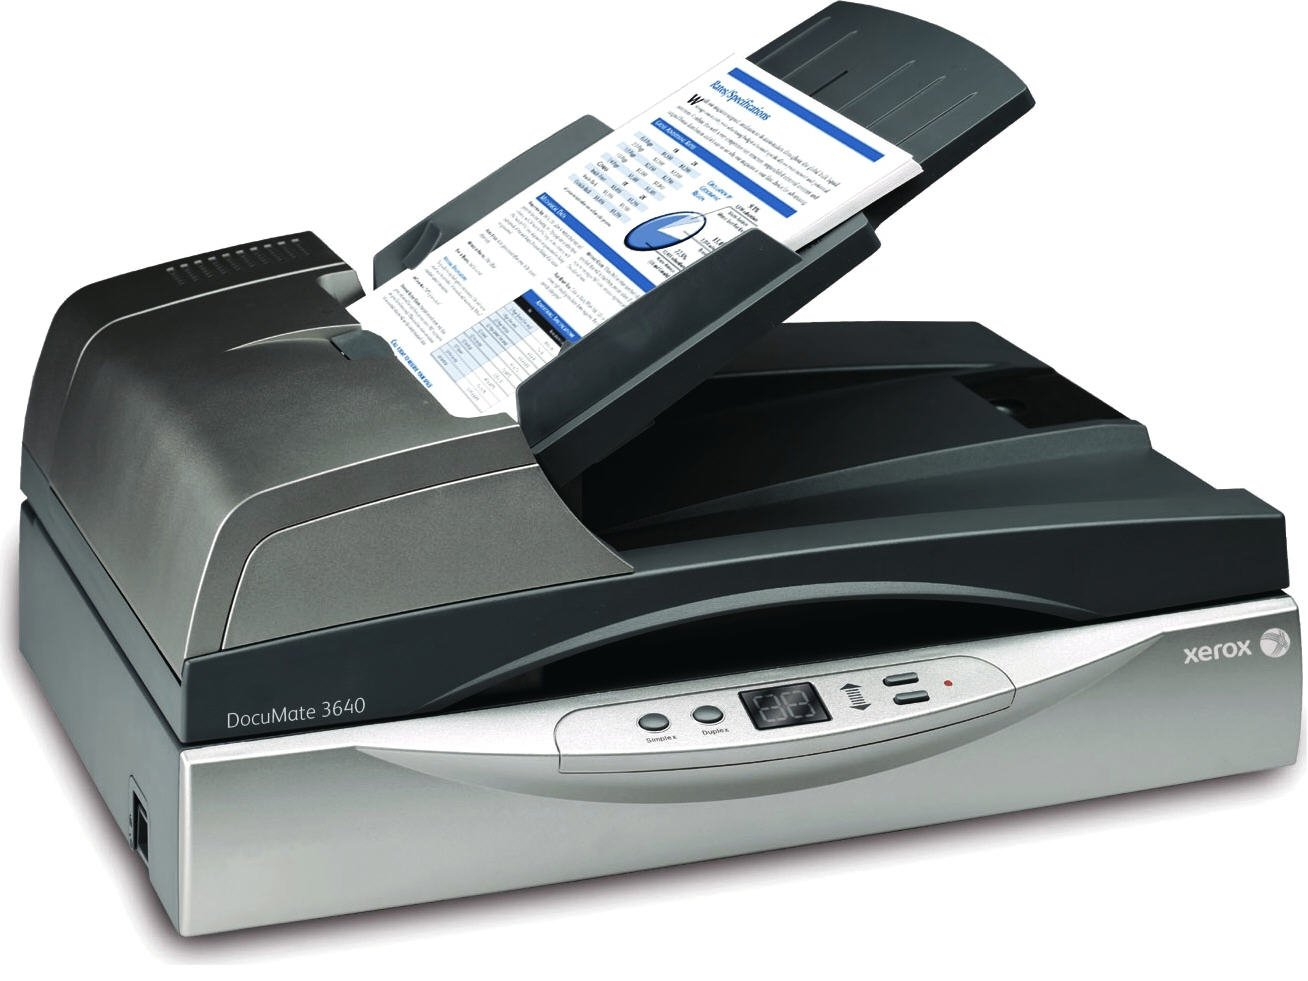 Xerox DocuMate 3640 Departmental Duplex 40 PPM 80 IPM Legal Size Flatbed Scanner by Xerox